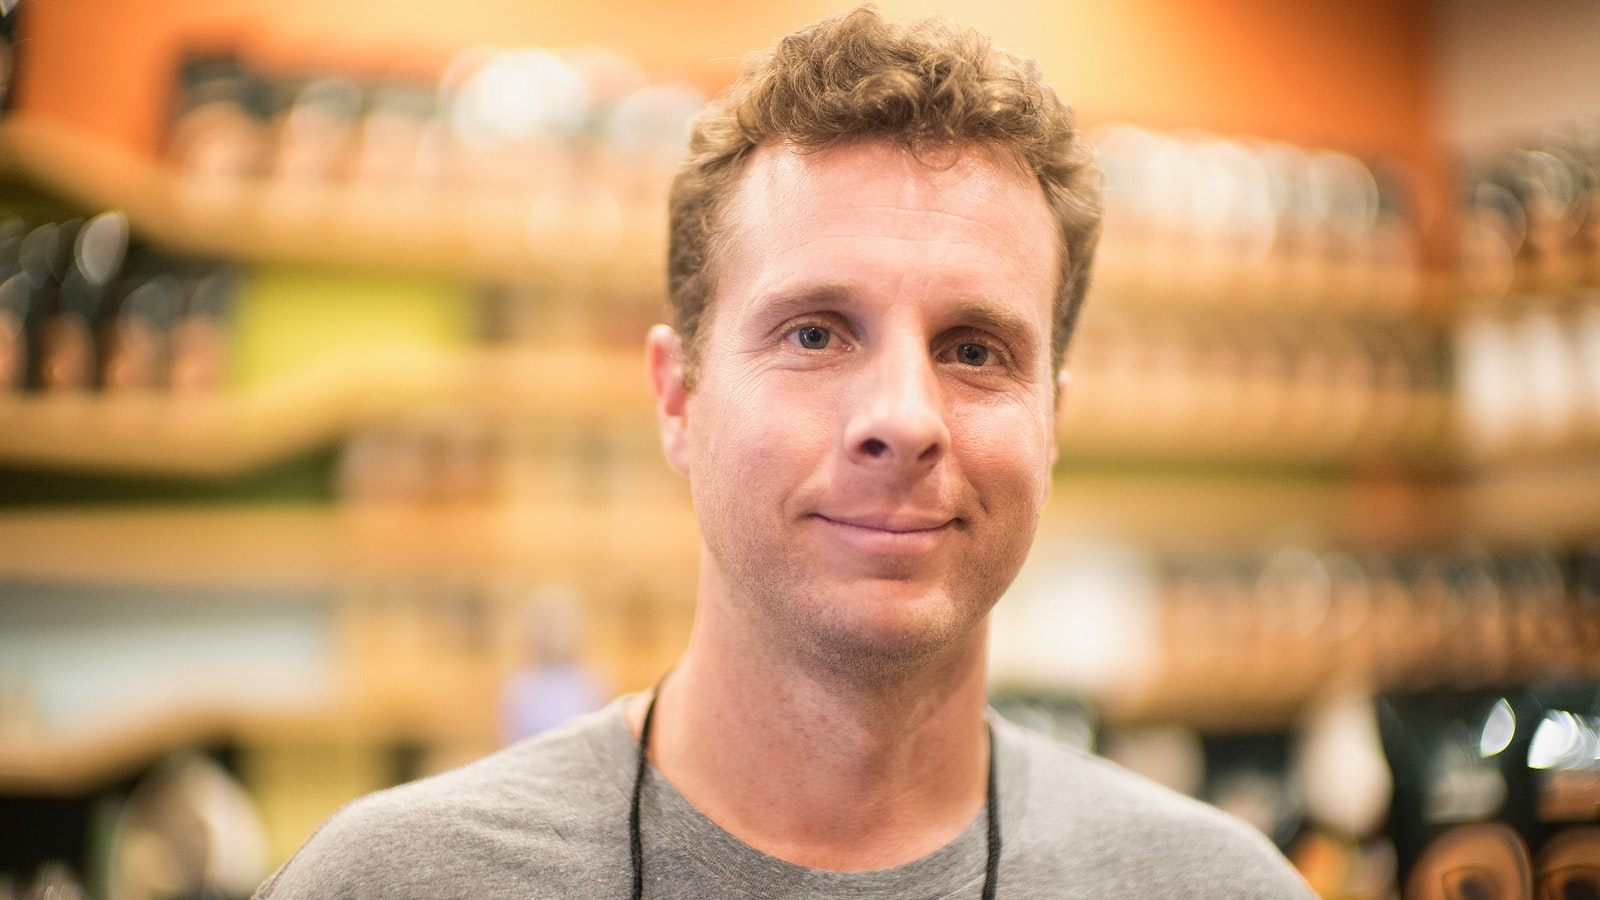 Ring CEO Jamie Siminoff. Photo by Flickr/Christopher Michel.